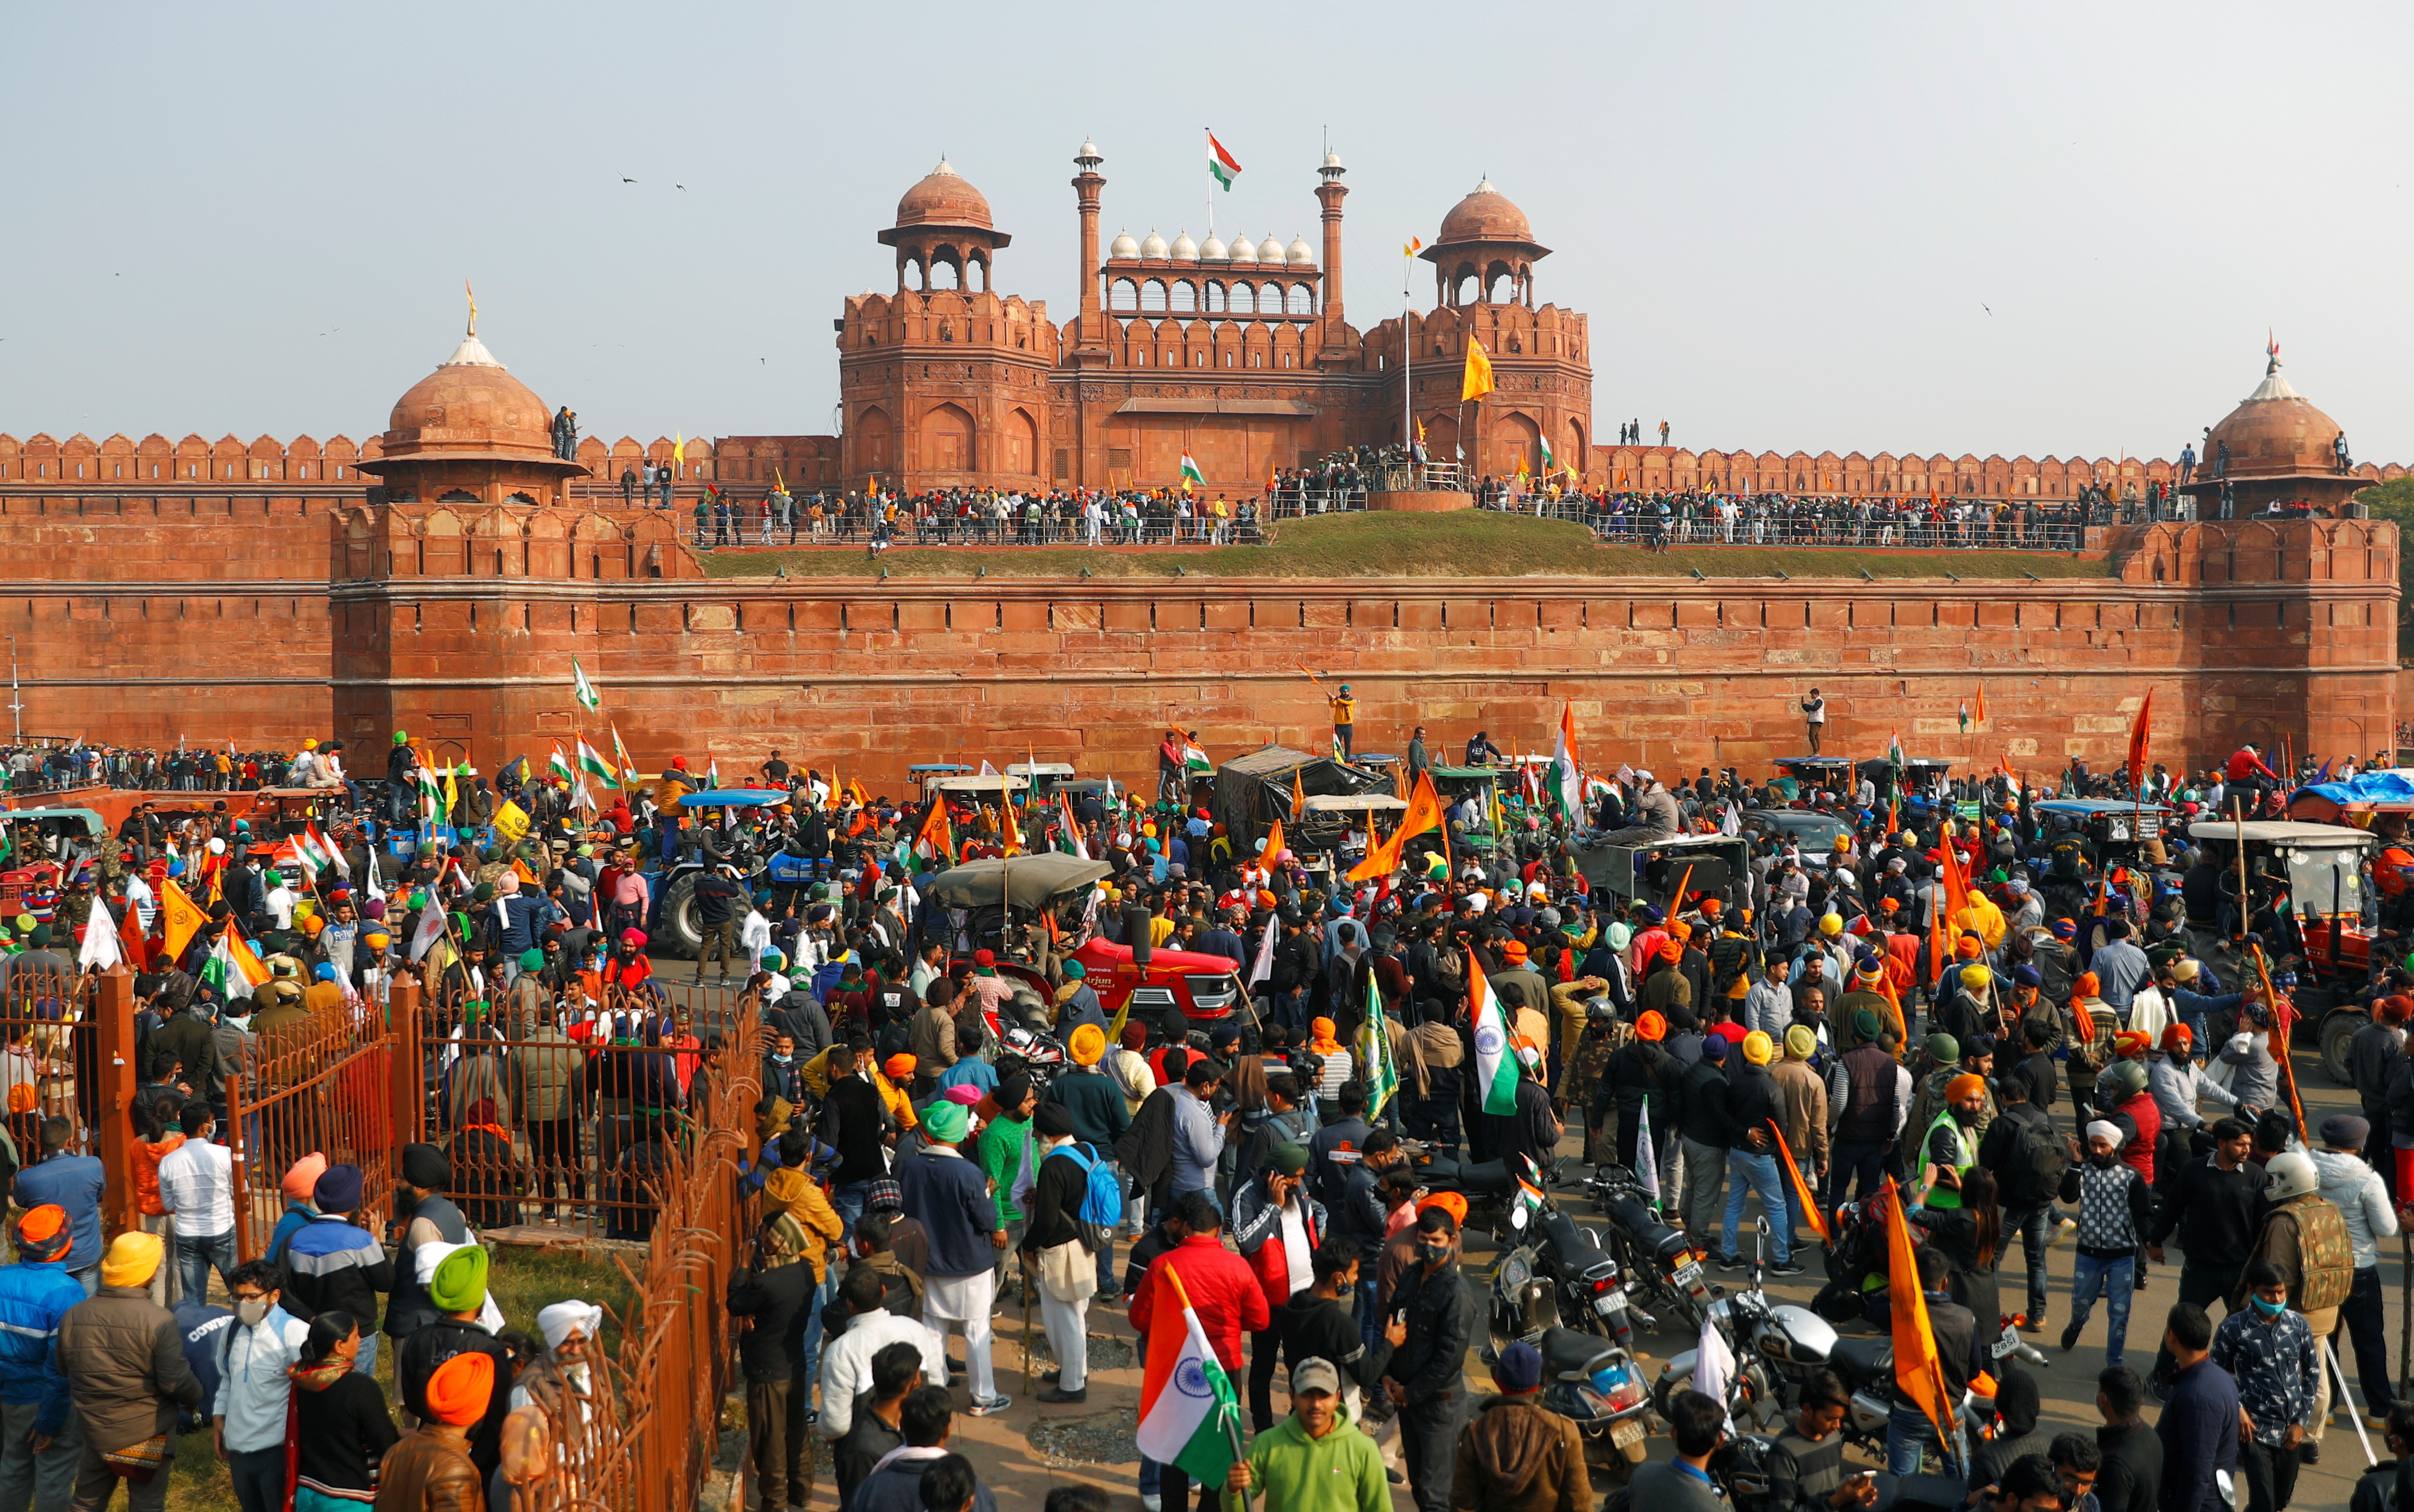 Farmers gather in front of the historic Red Fort during a protest against farm laws introduced by the government, in Delhi, India, January 26, 2021. REUTERS/Adnan Abidi